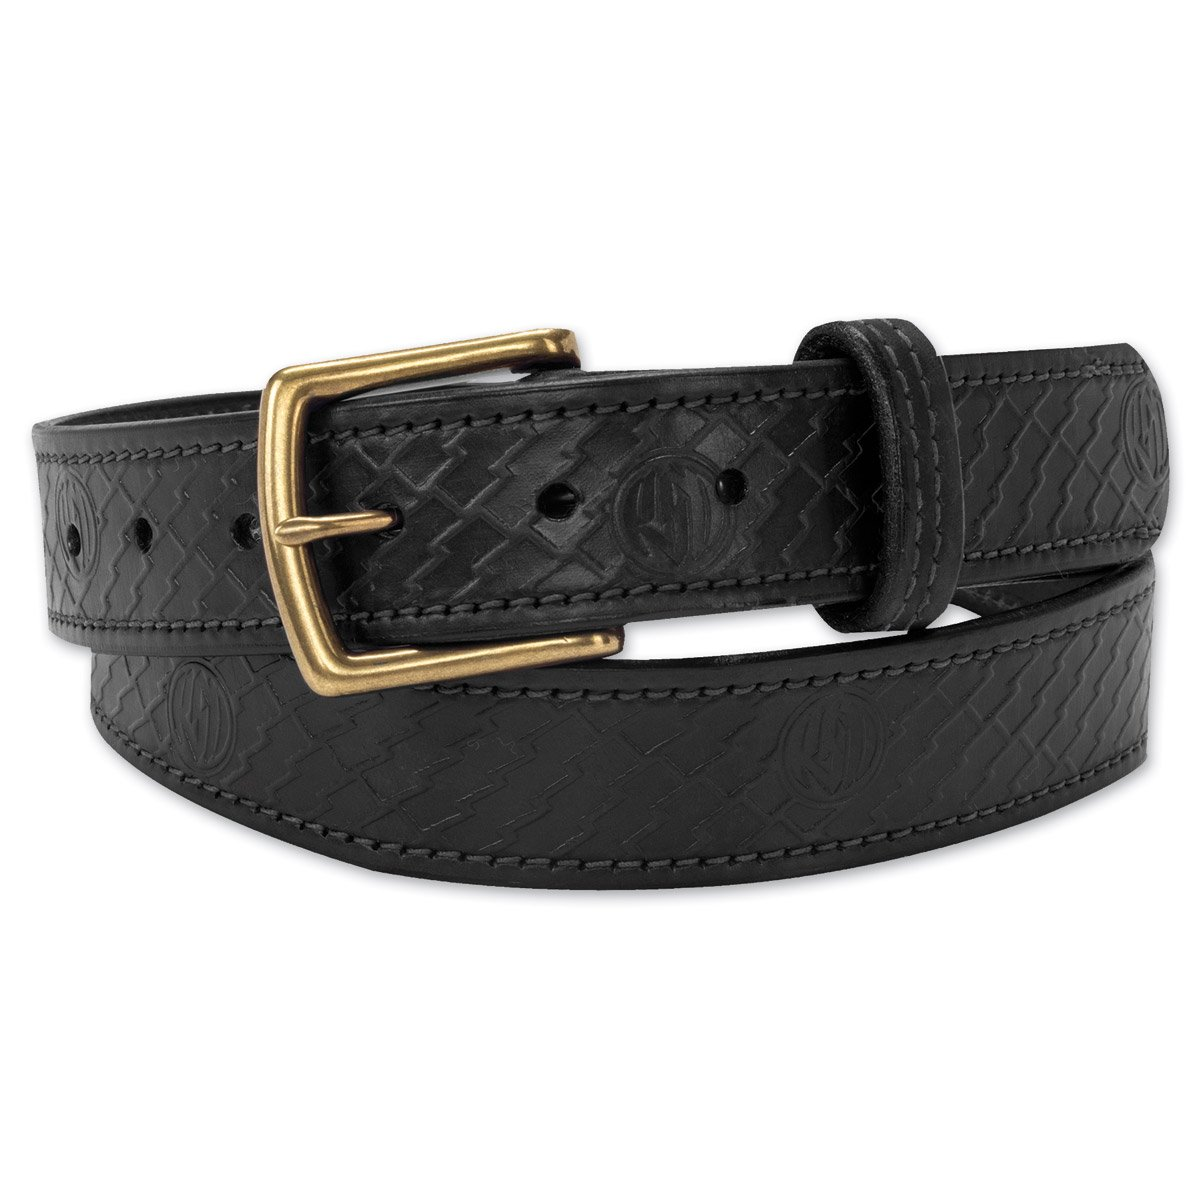 Roland Sands Design 0808-0800-0053 Debo Belt (Black, Medium)